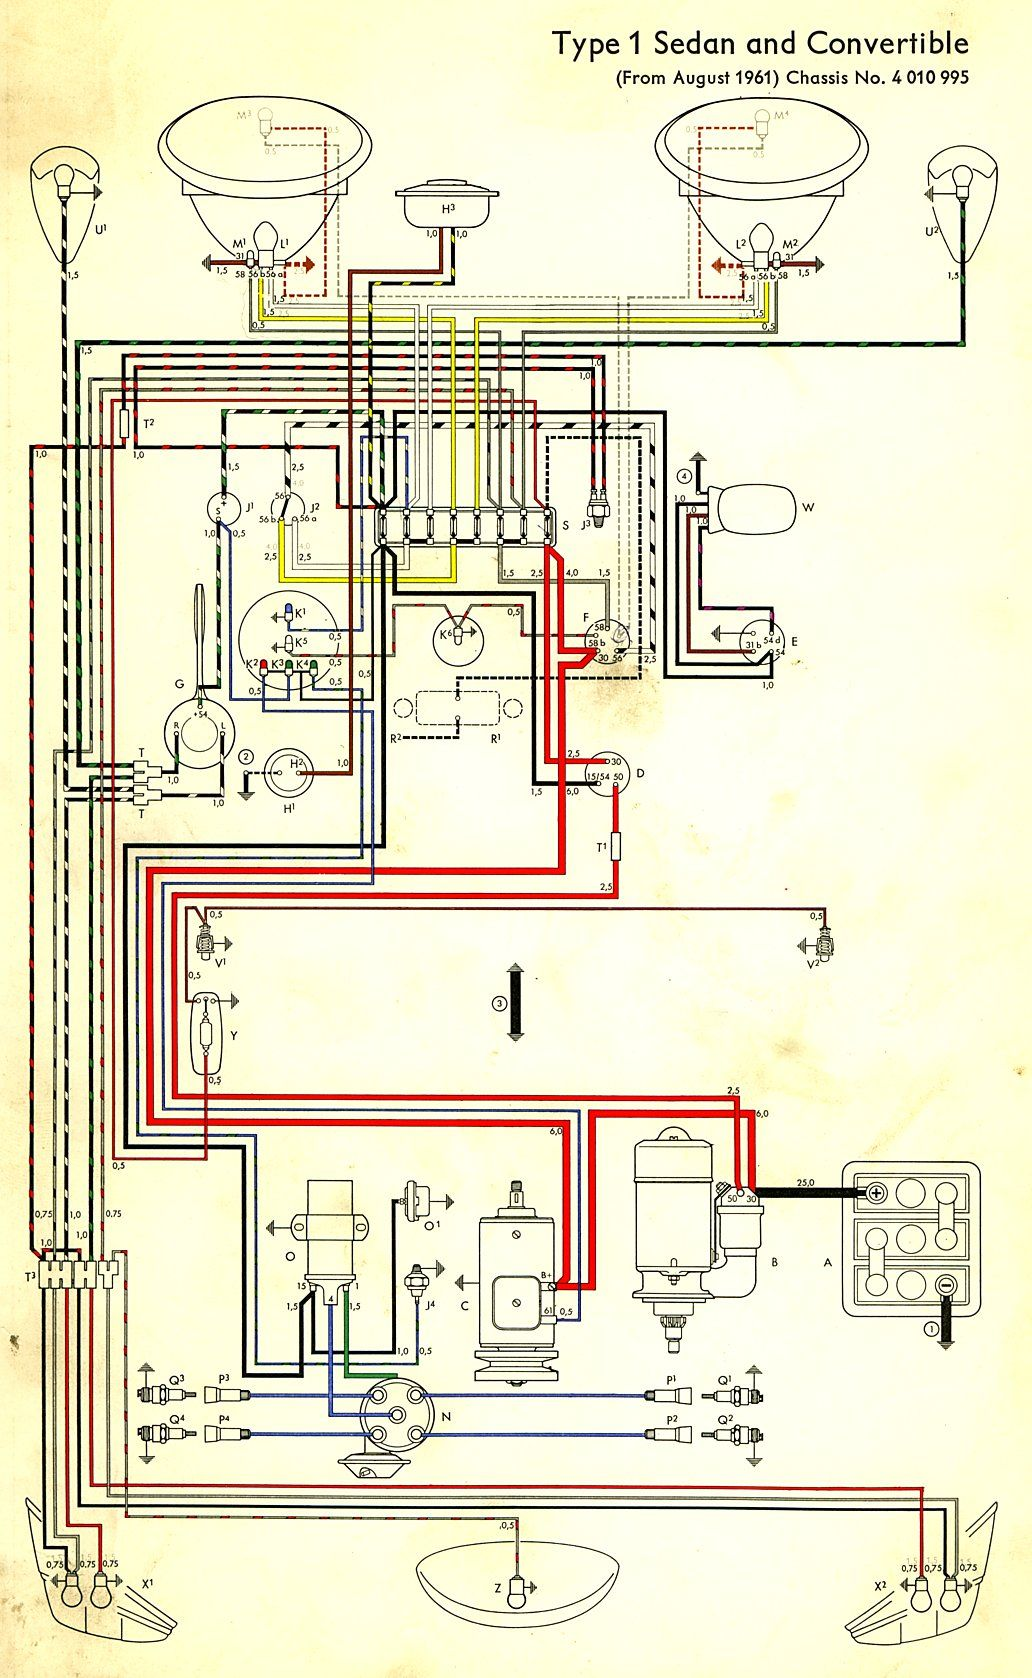 f471c06218a1f57c2503376a8b366a28 wiring diagram in color 1964 vw bug, beetle, convertible the 1968 vw type 3 wiring diagram at gsmx.co